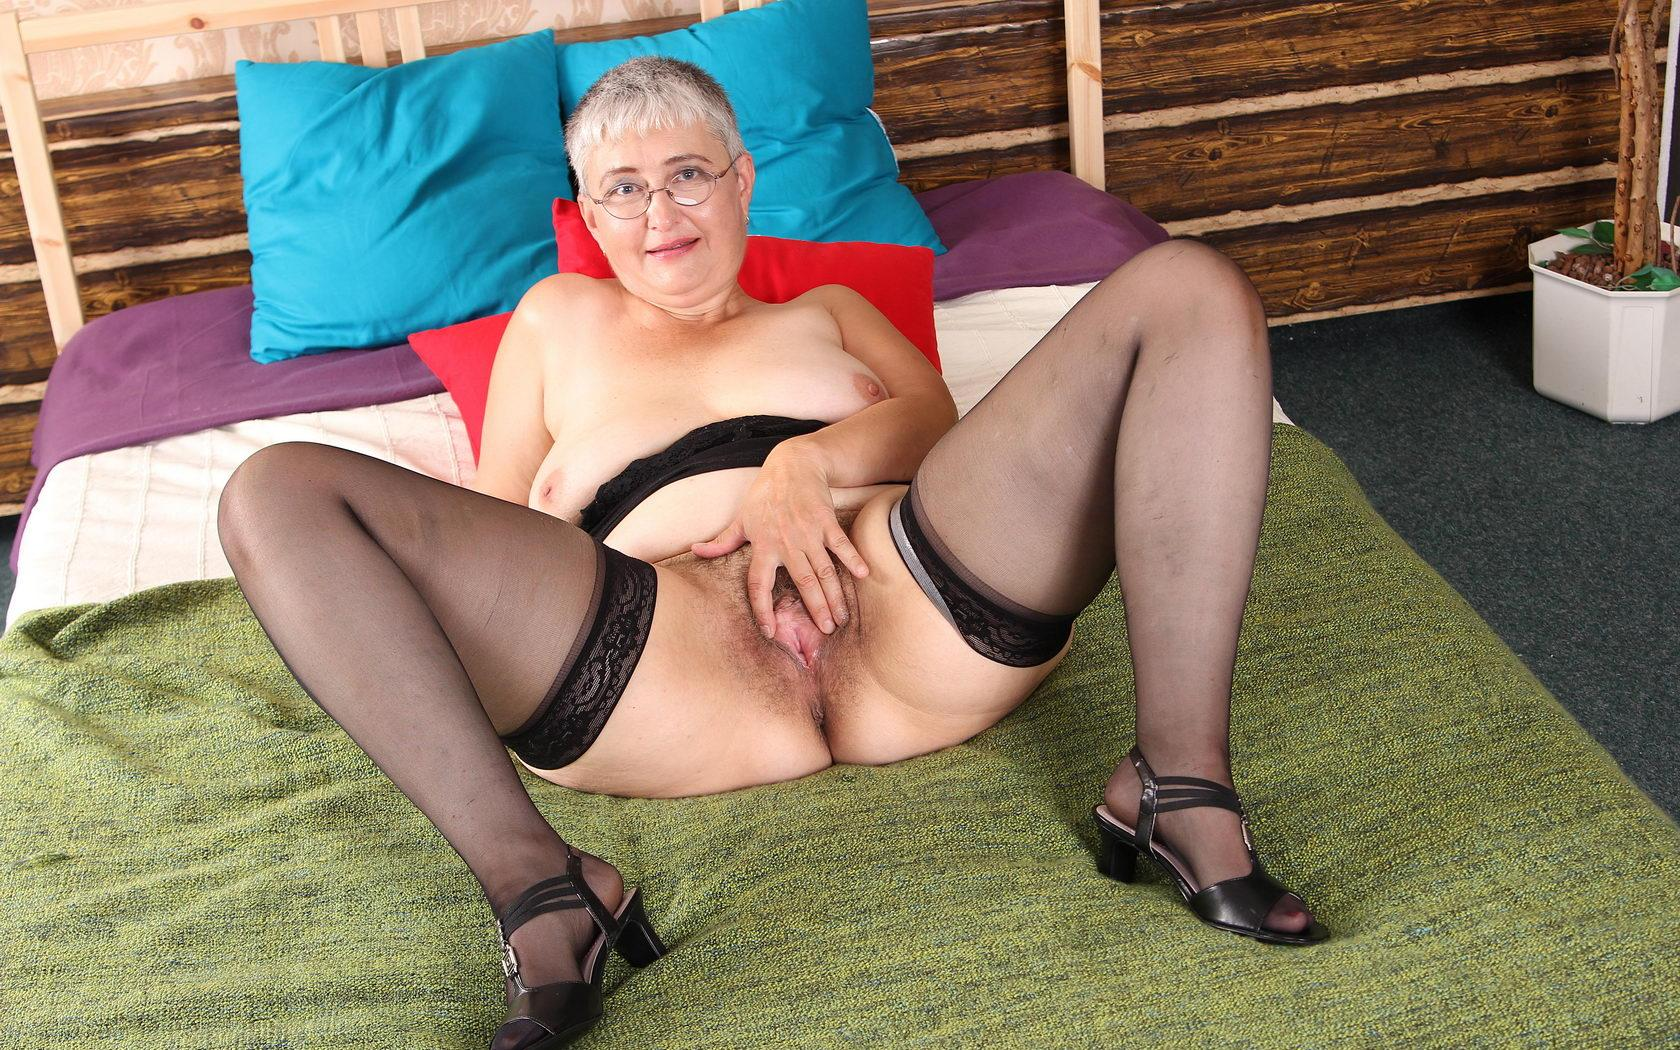 Krista a golden granny invites everybody to unload in her 70 years old pussy